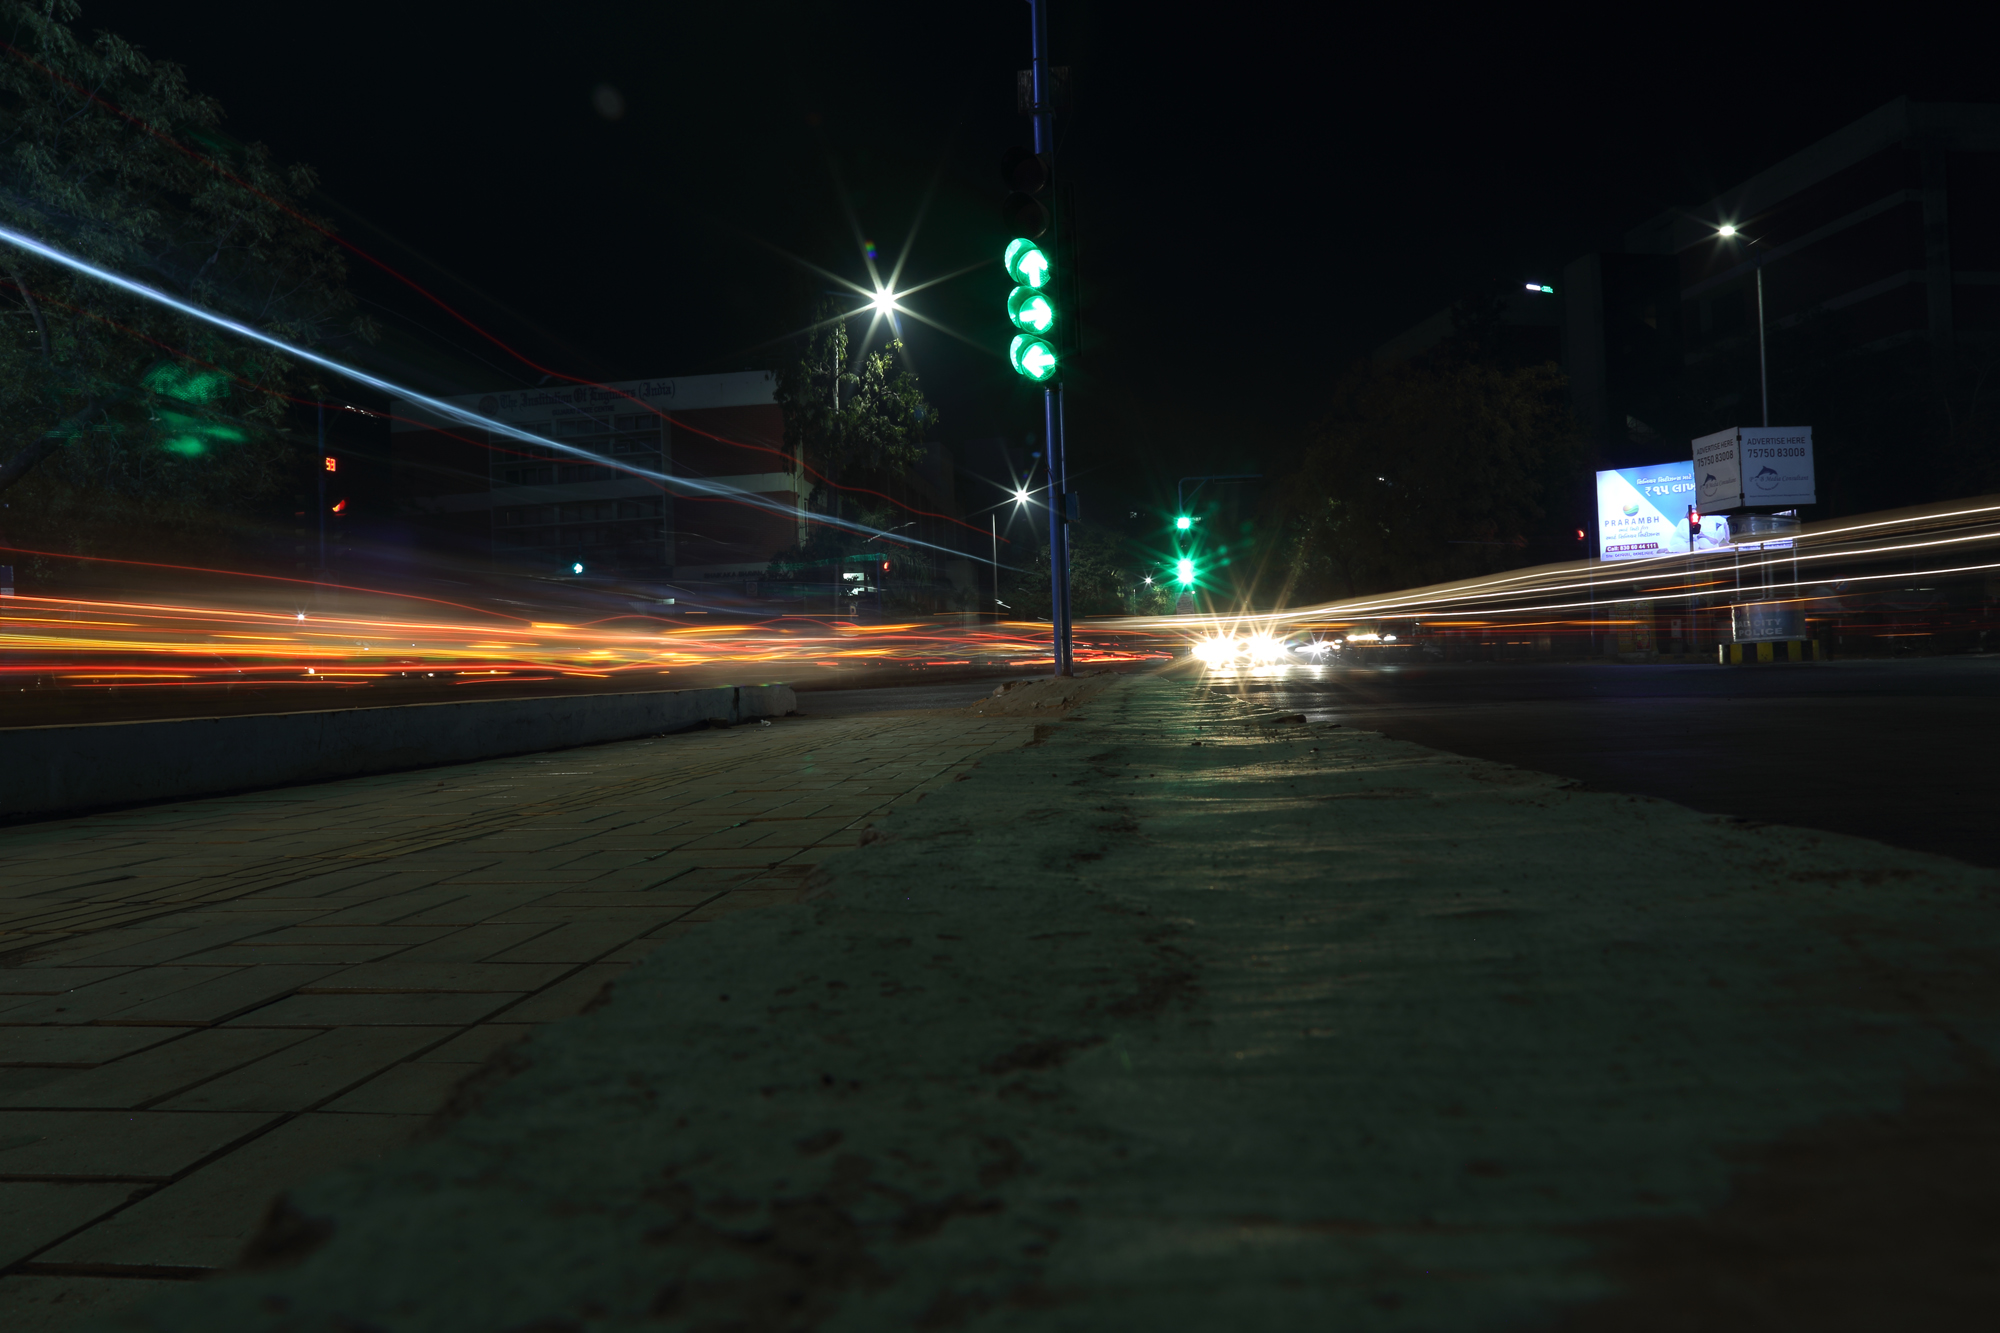 THE MOVEMENT OF TRAFFIC IS HIGHLY DEPENDS UPON THE TRAFFIC LIGHTS SO TRIED TO CAPTURE THAT RUSH HOUR!!!